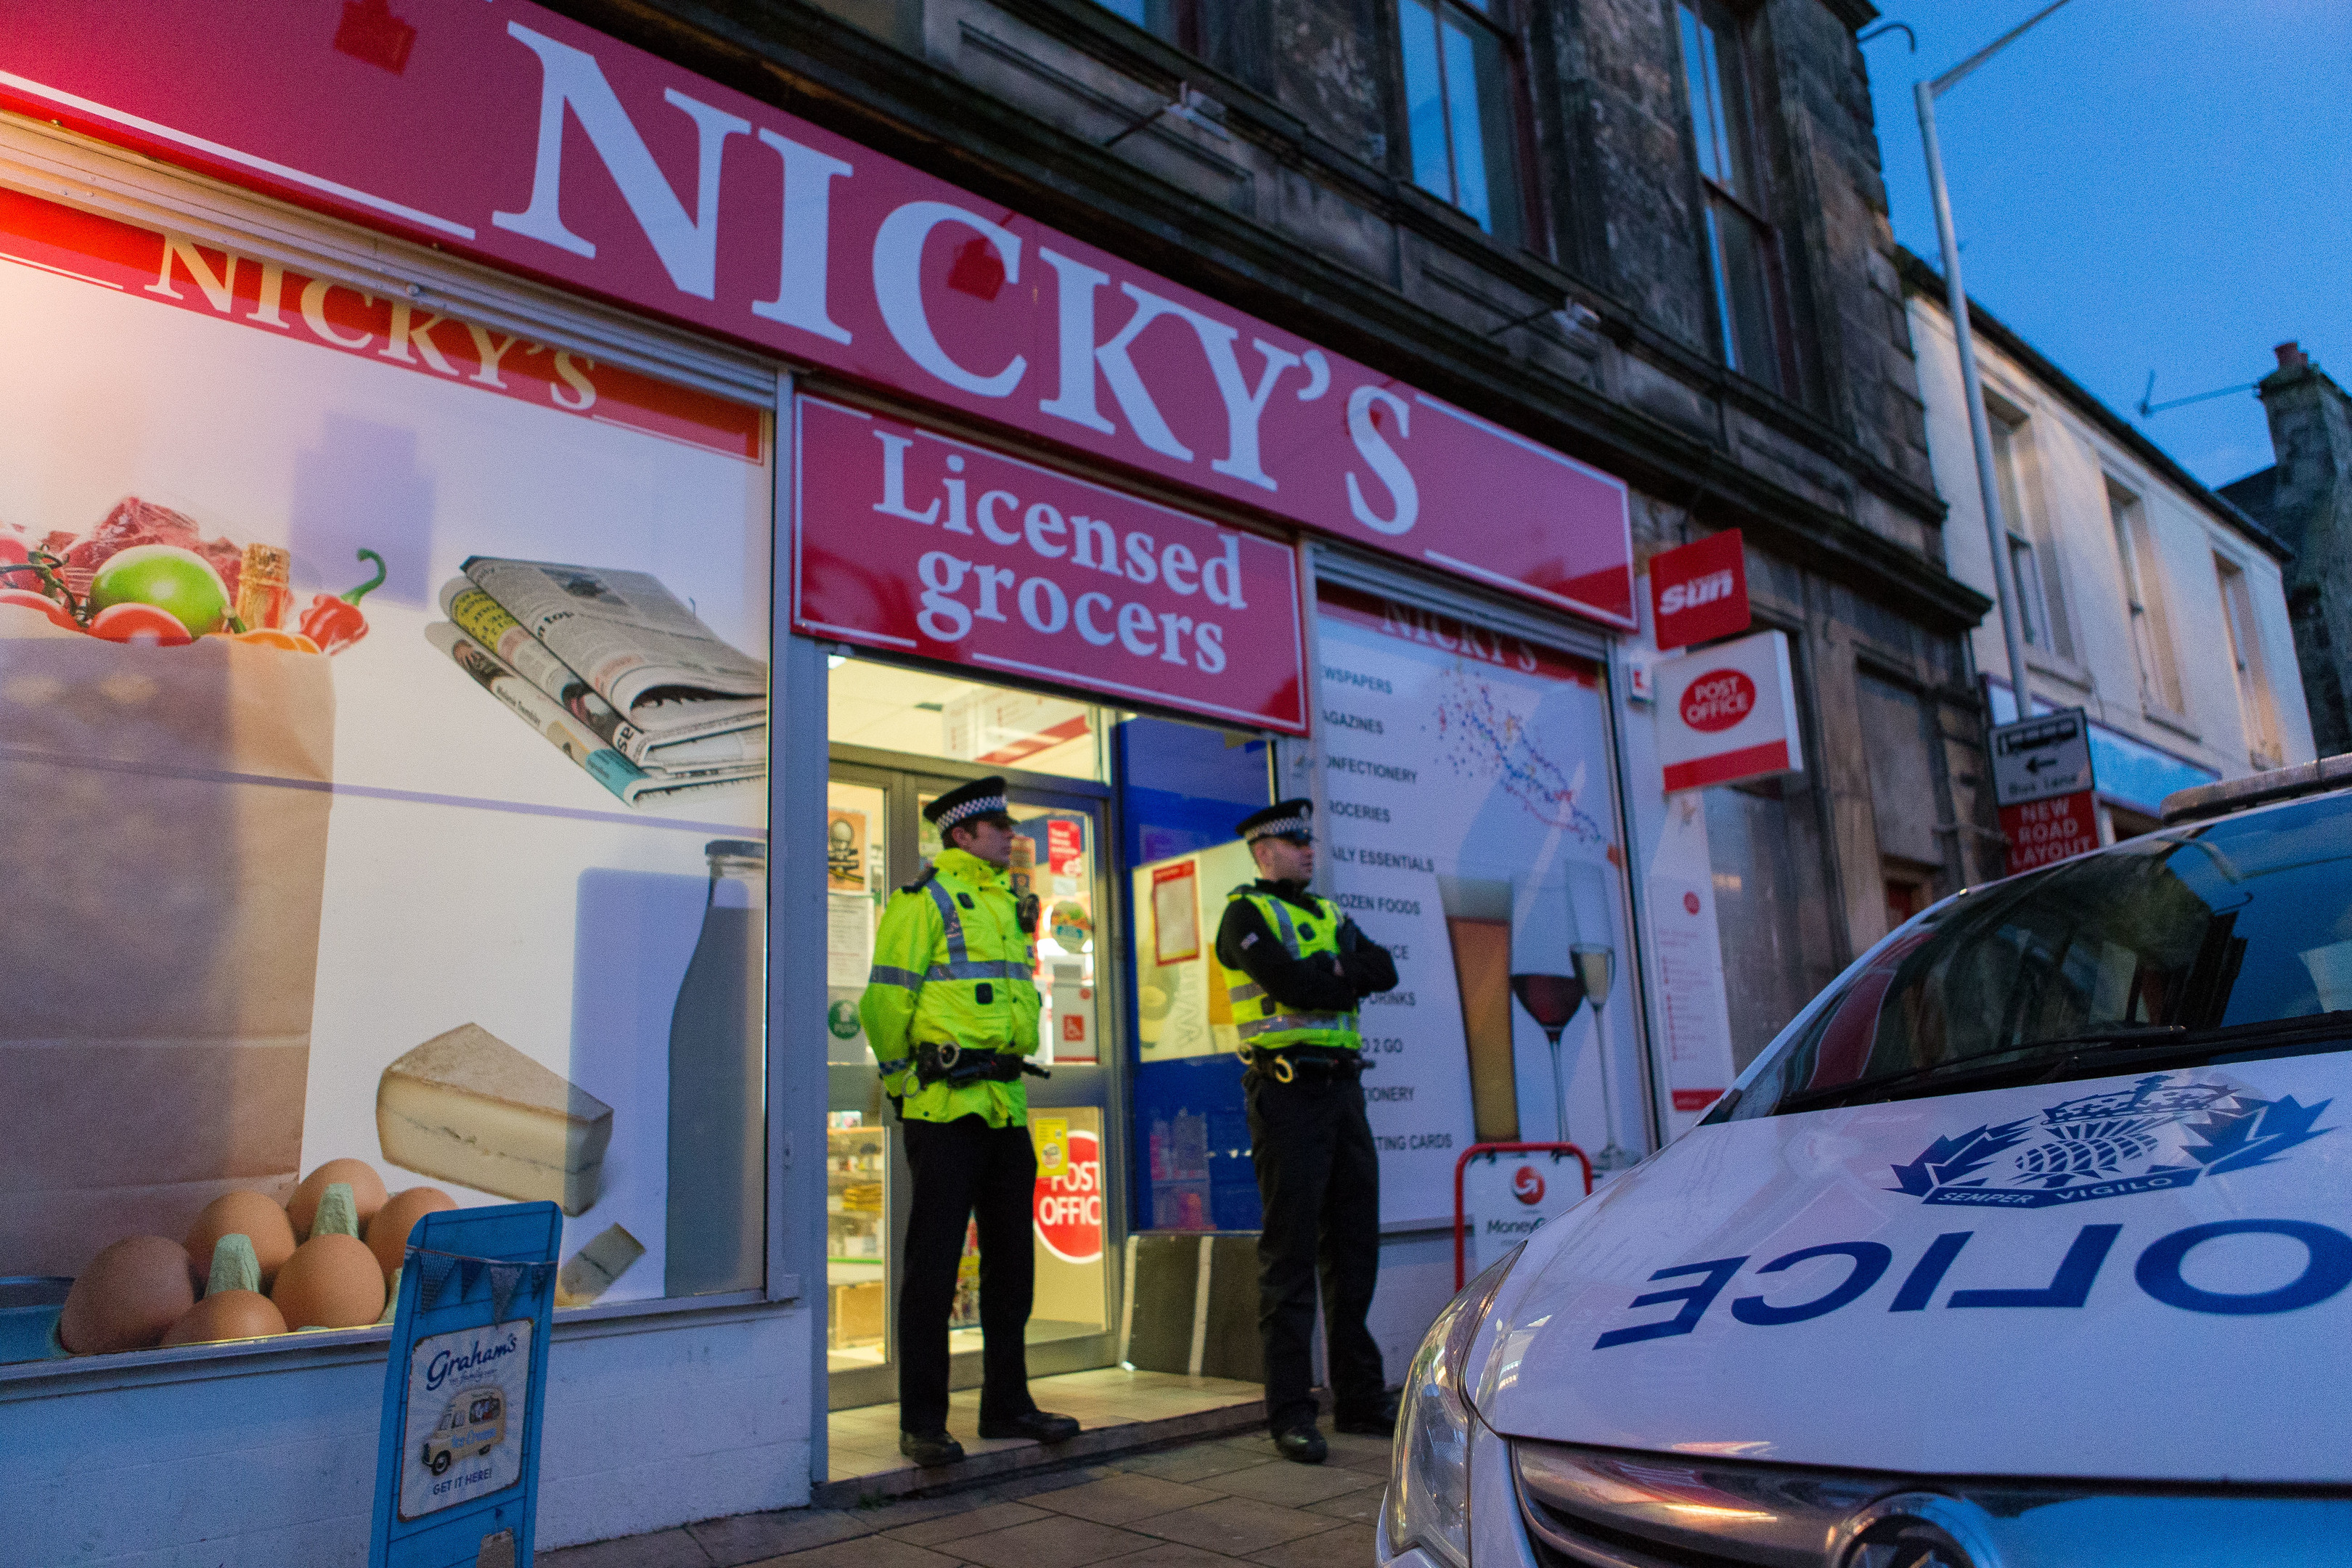 Nicky's licensed grocers in Kincardine was raided.